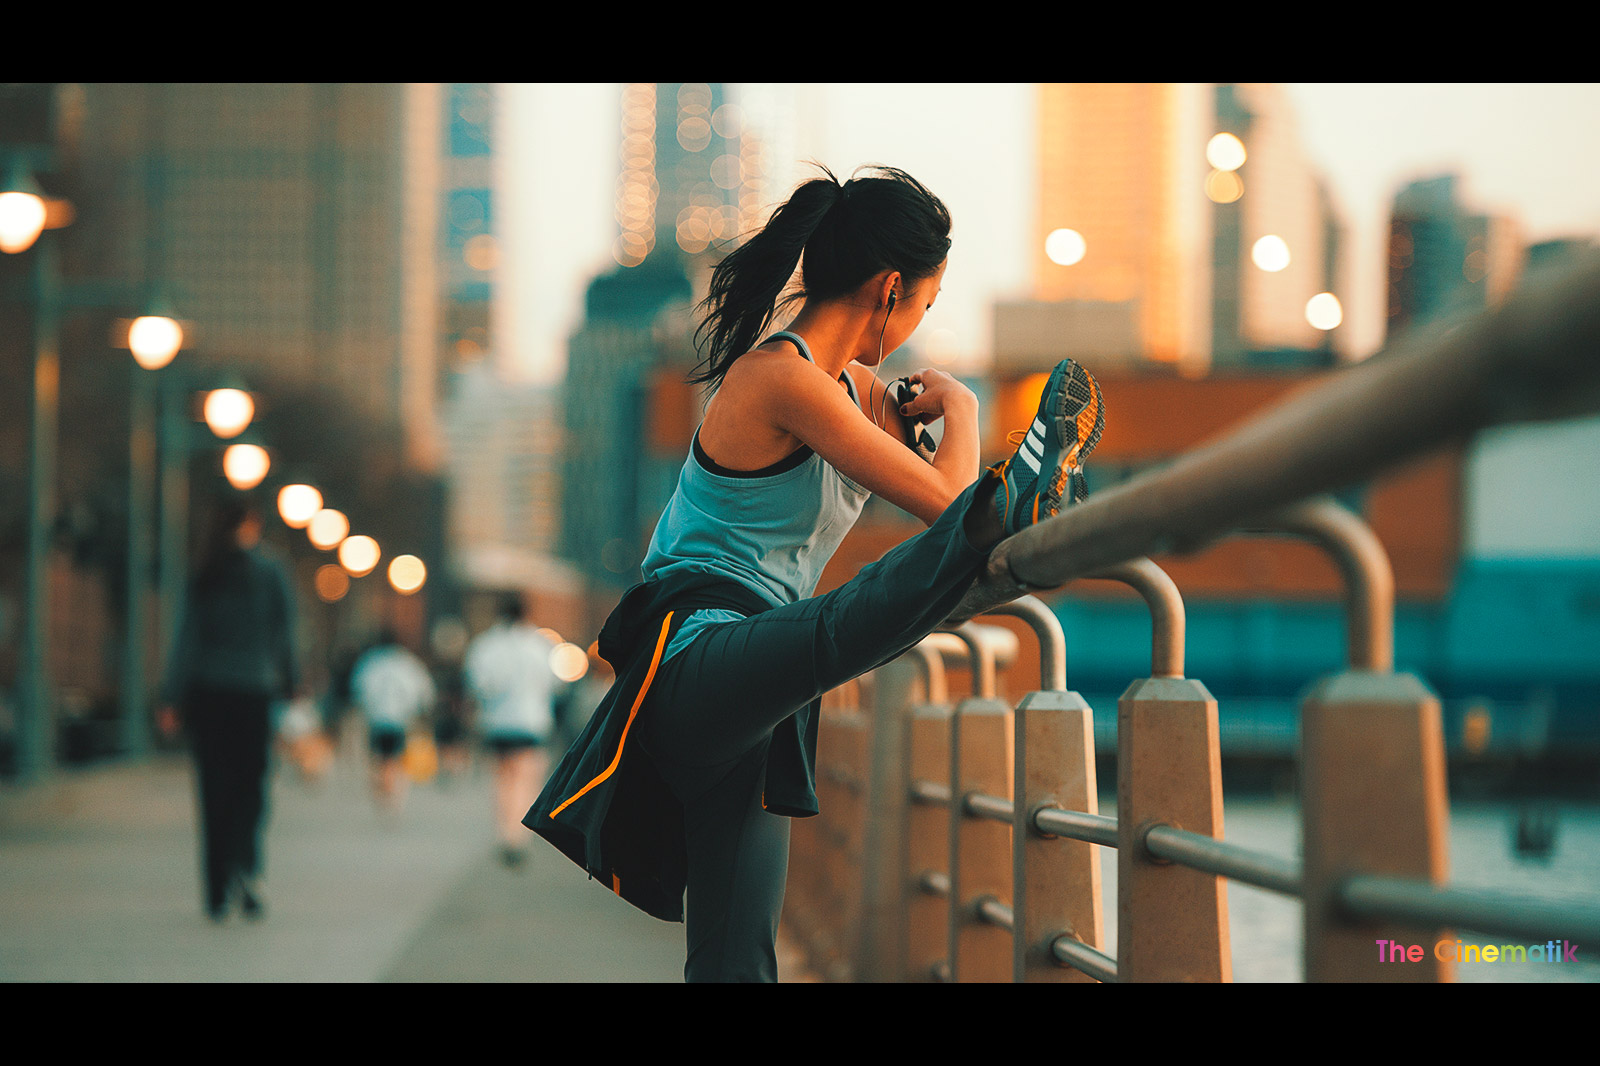 asian-young-woman-wearing-adidas-sneakers-streching-while-listening-to-music-in-New-York-City.jpg